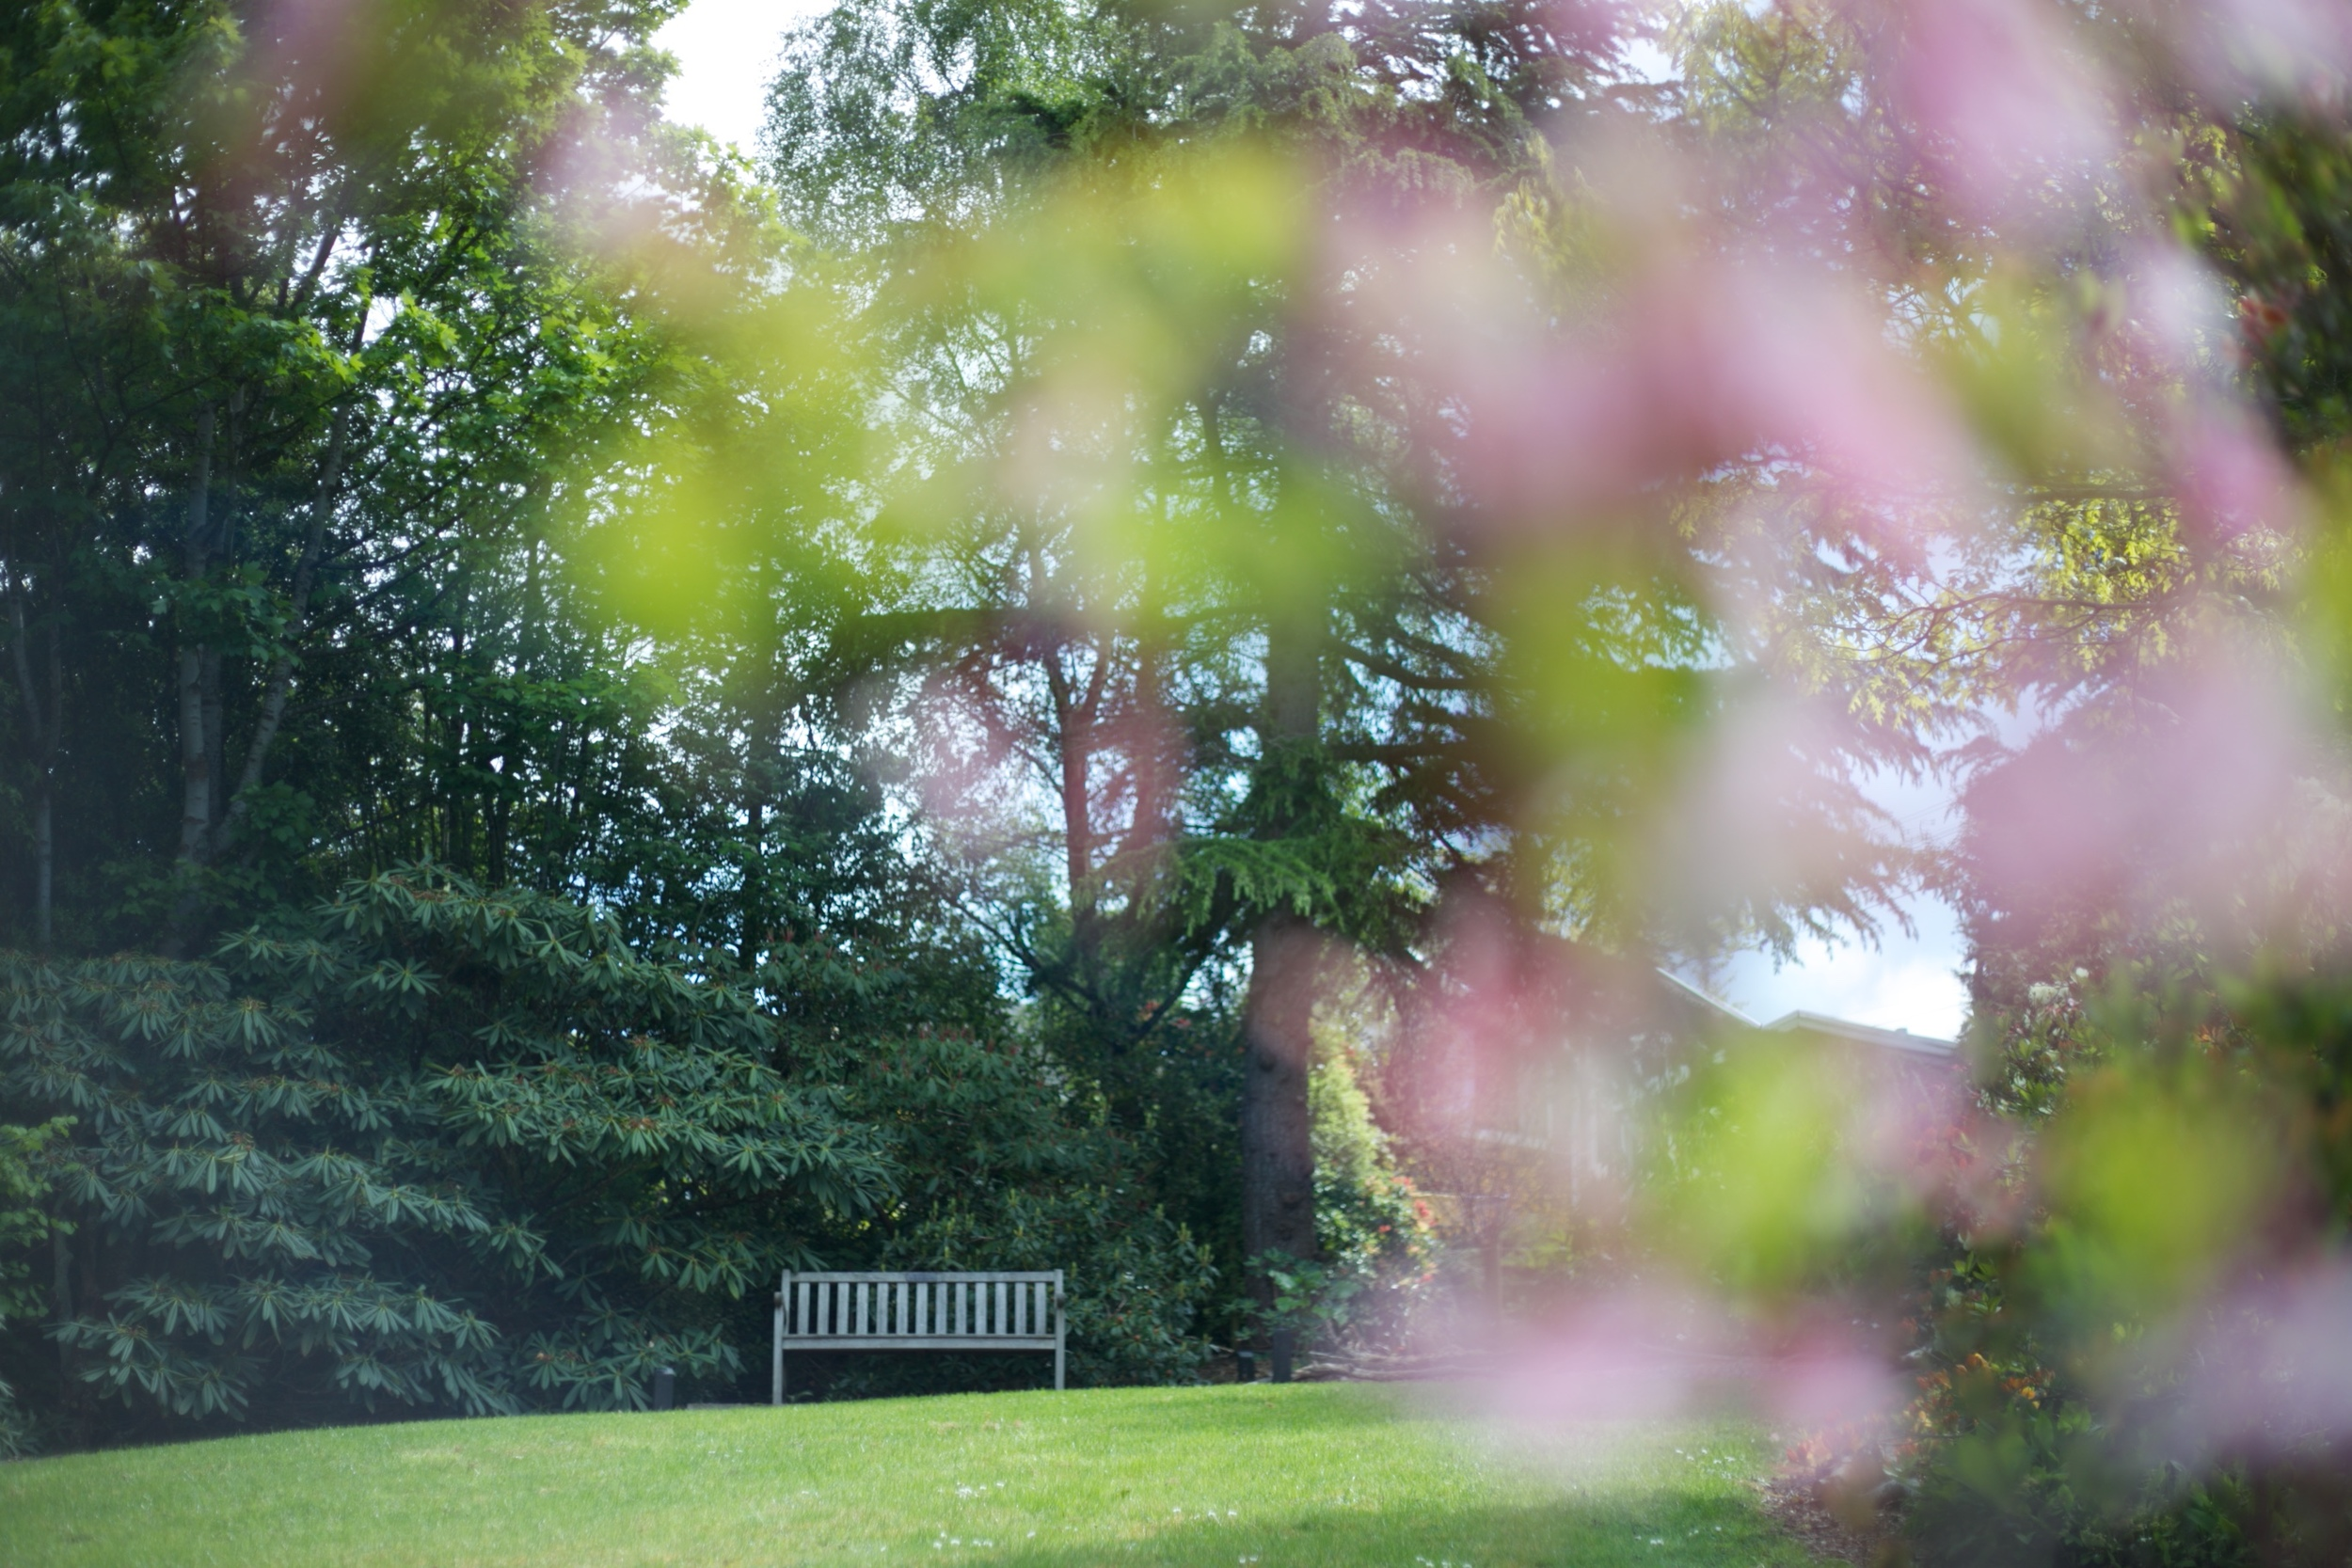 A park bench seen behind blossoms, Tannock Glen in spring.